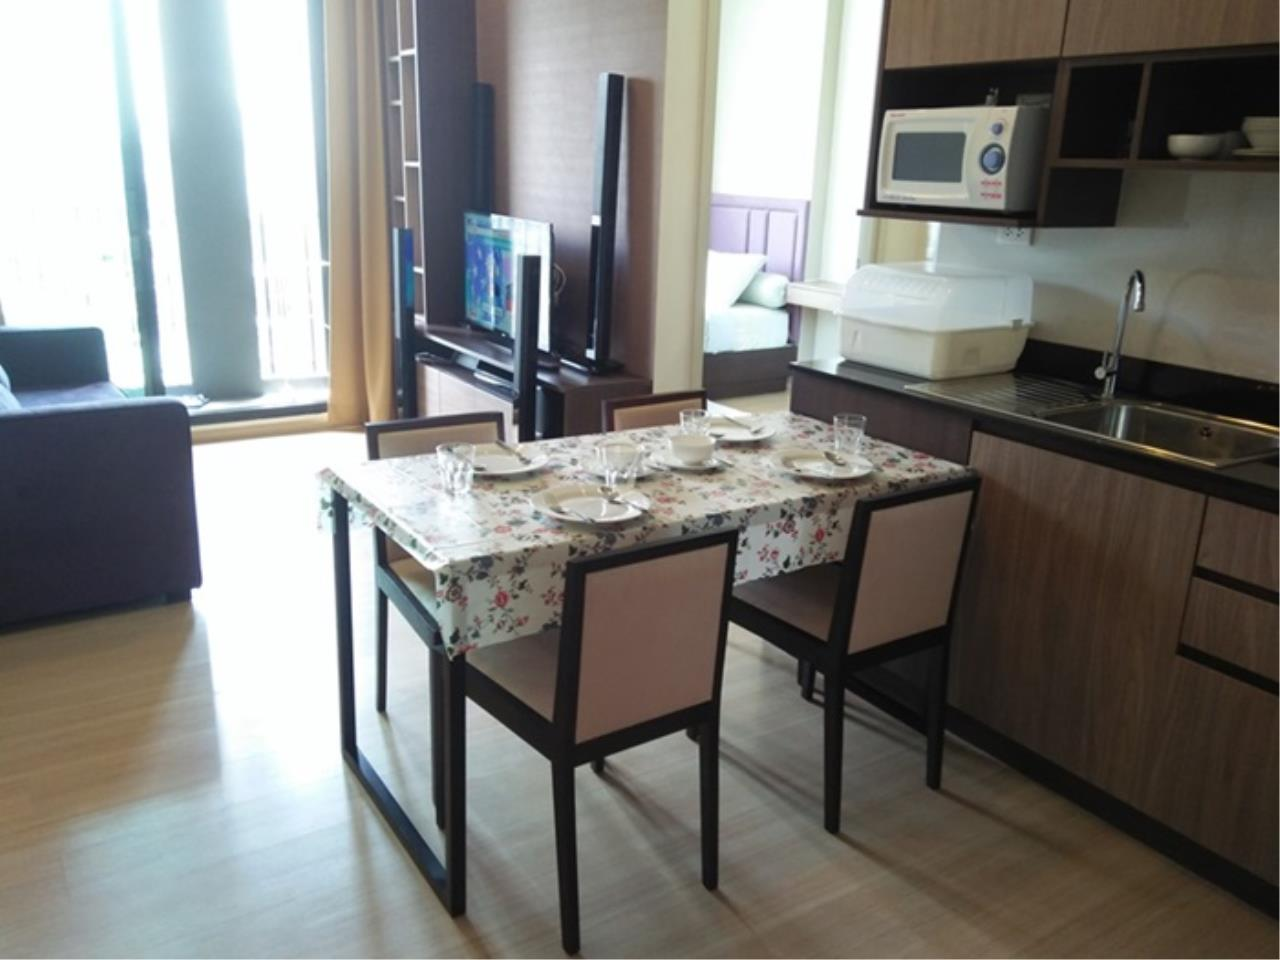 Siam Prop Agency's The Capital Ekamai - Thonglor Luxury Condo, 2 bedrooms for rent with 4-meter ceiling height 6